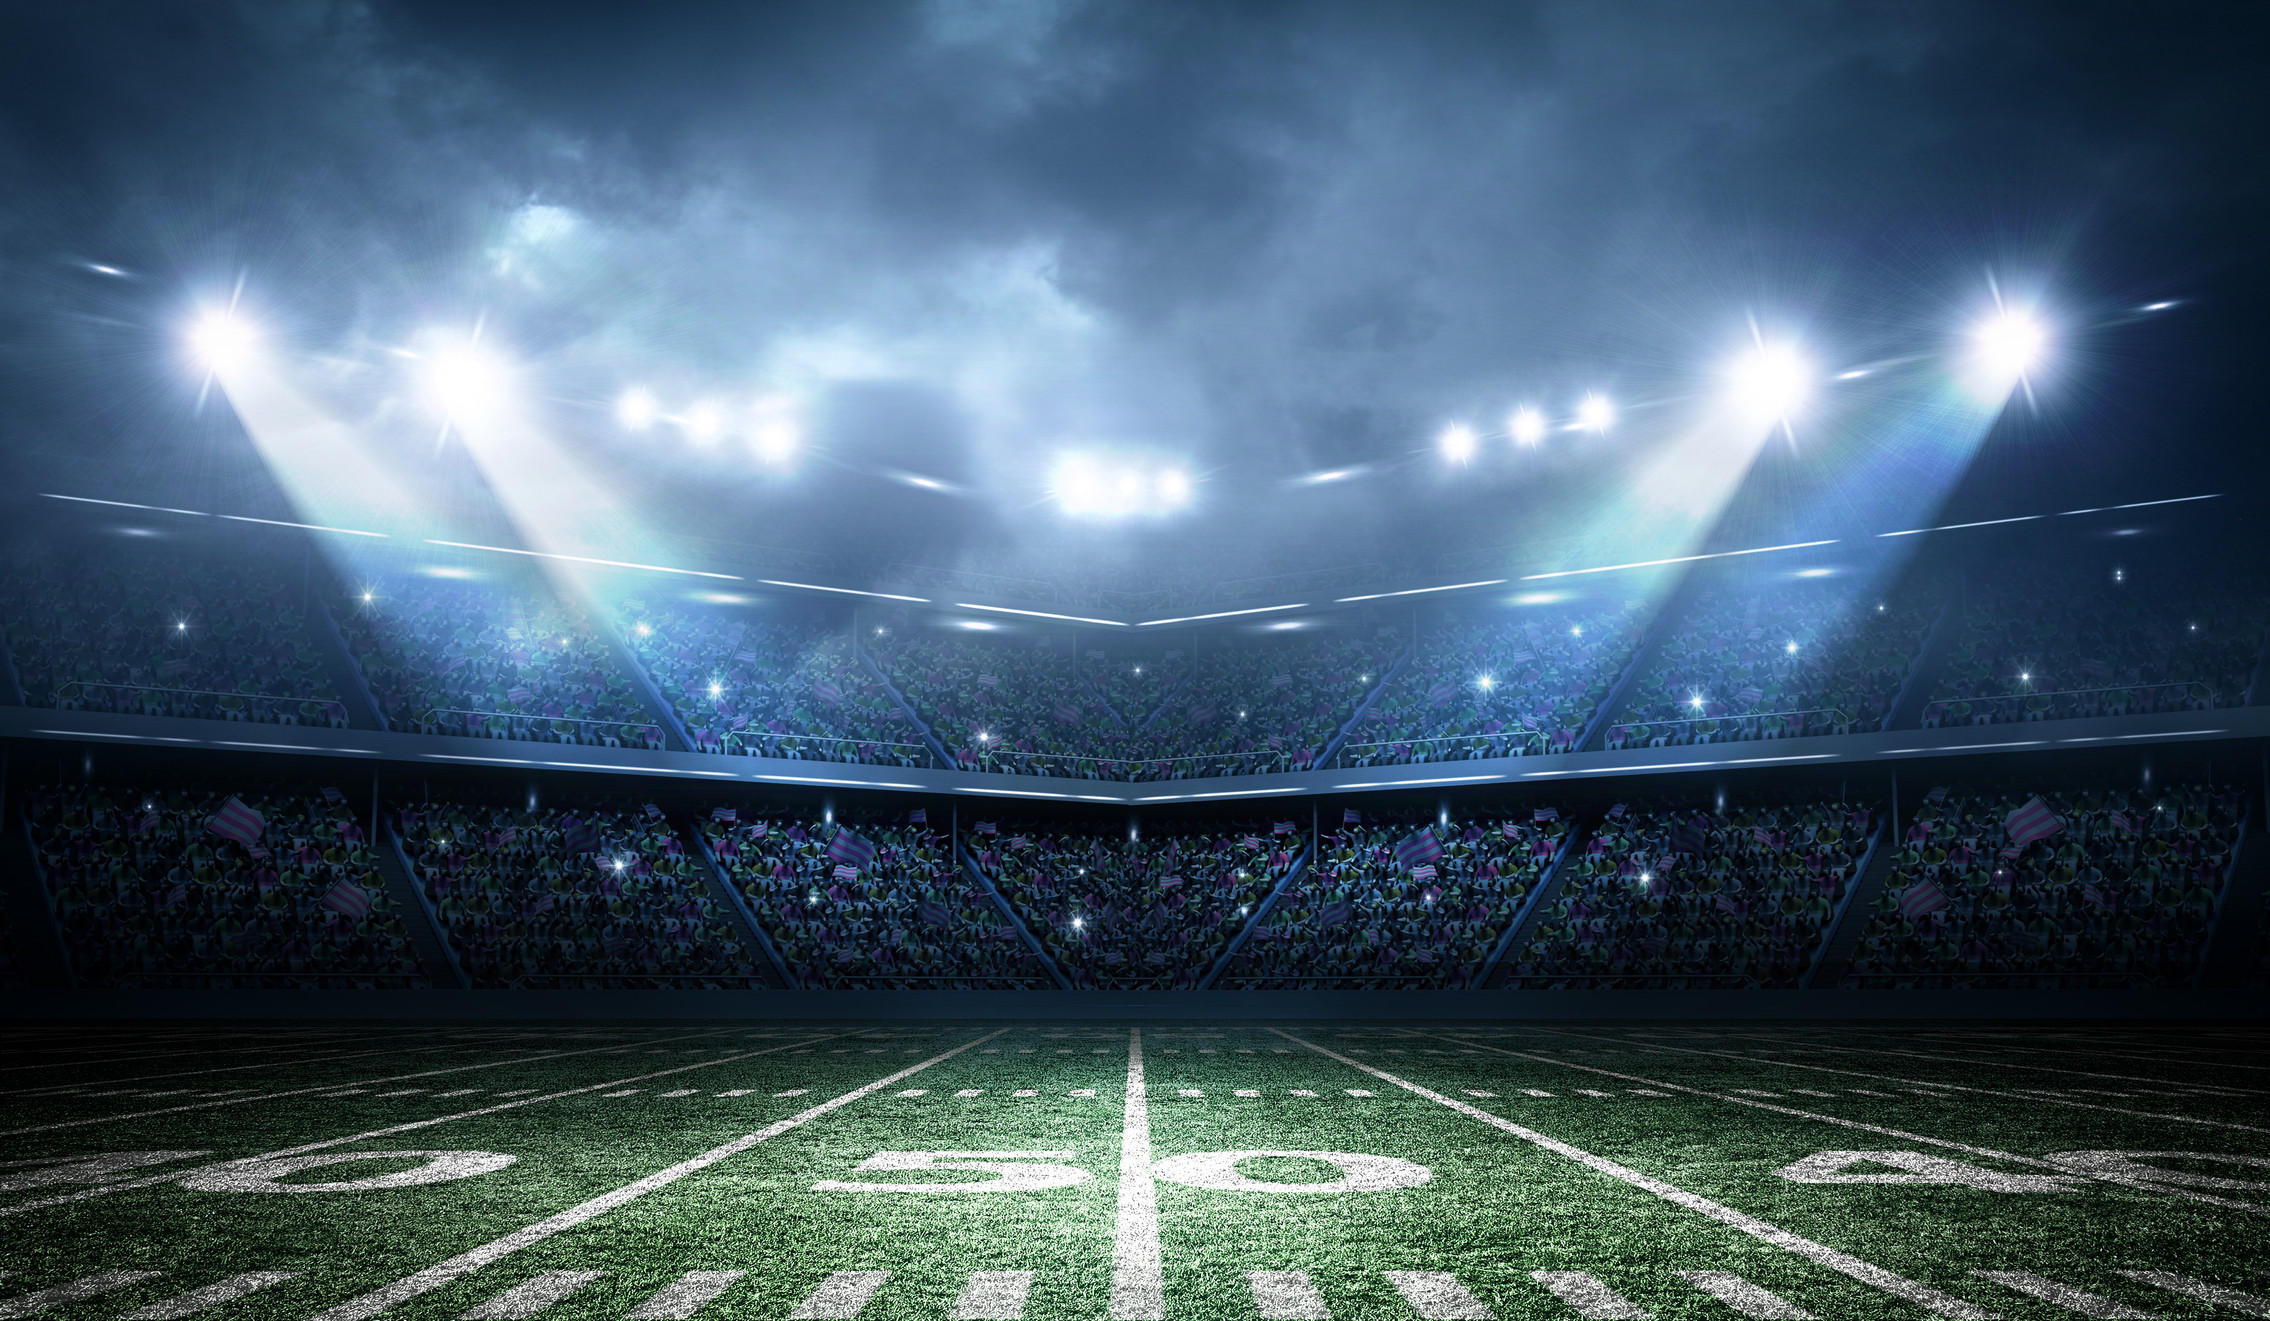 Seahawks Hd Wallpaper Football Stadium Background 60 Images